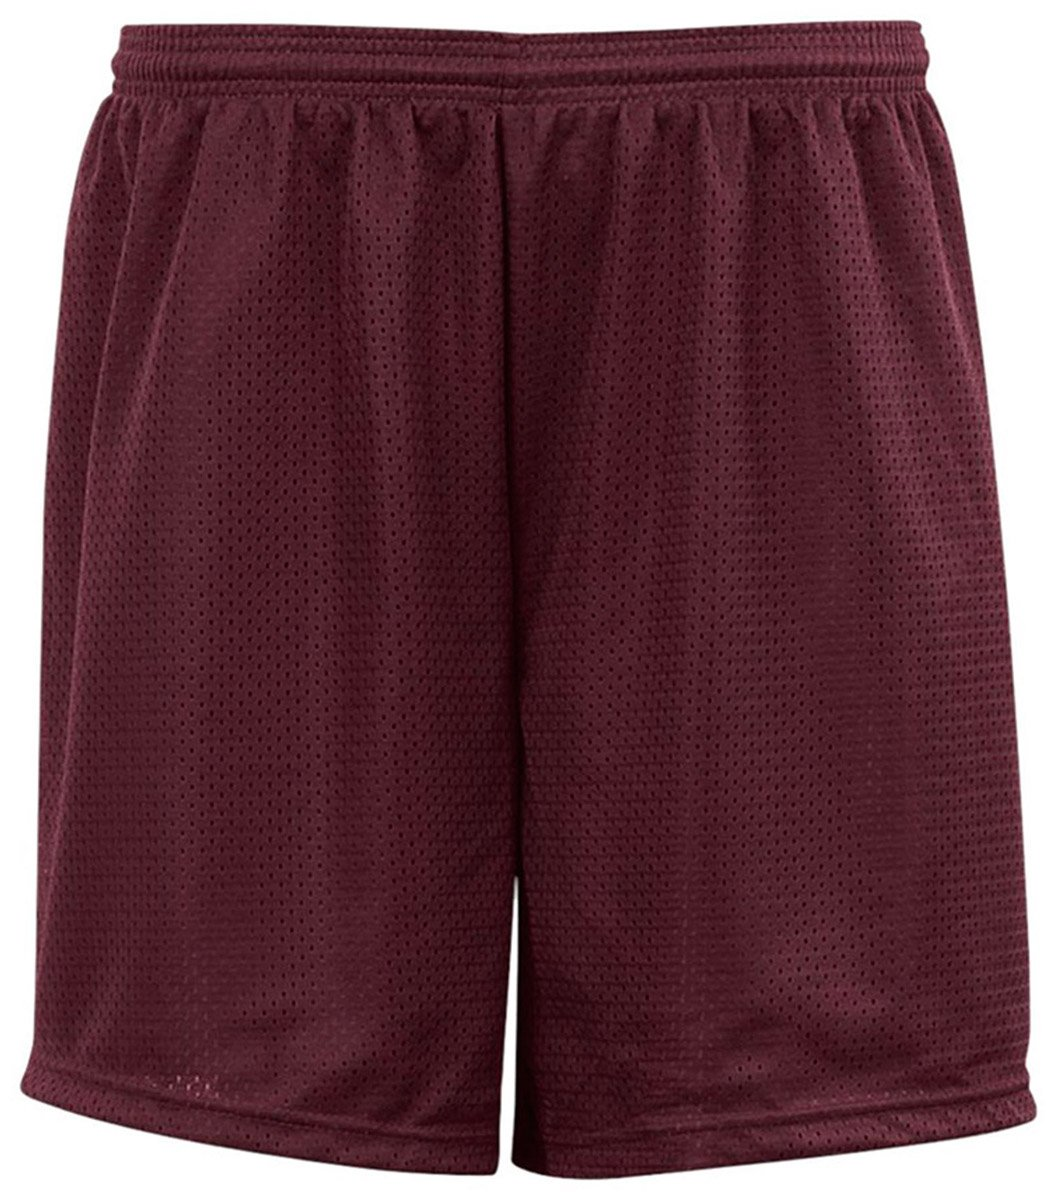 Unisex Child C2 5209 Sport Big Kids Youth Mesh 6'' Short Maroon Small by C2 Sport